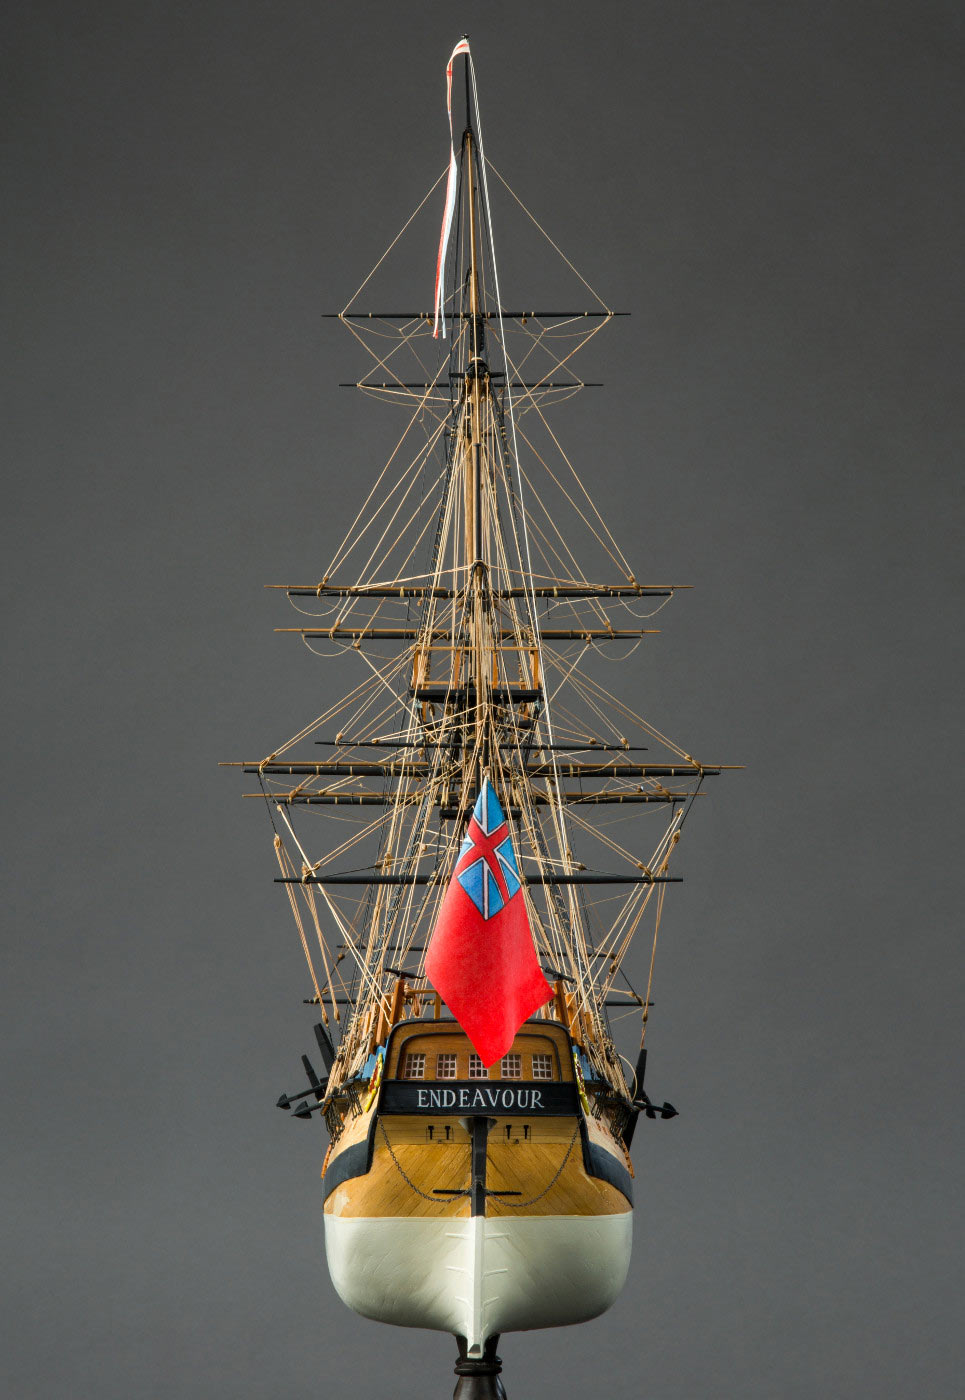 Rear view of a high-masted model wooden sailing ship, showing a red flag flying over the rear. - click to view larger image